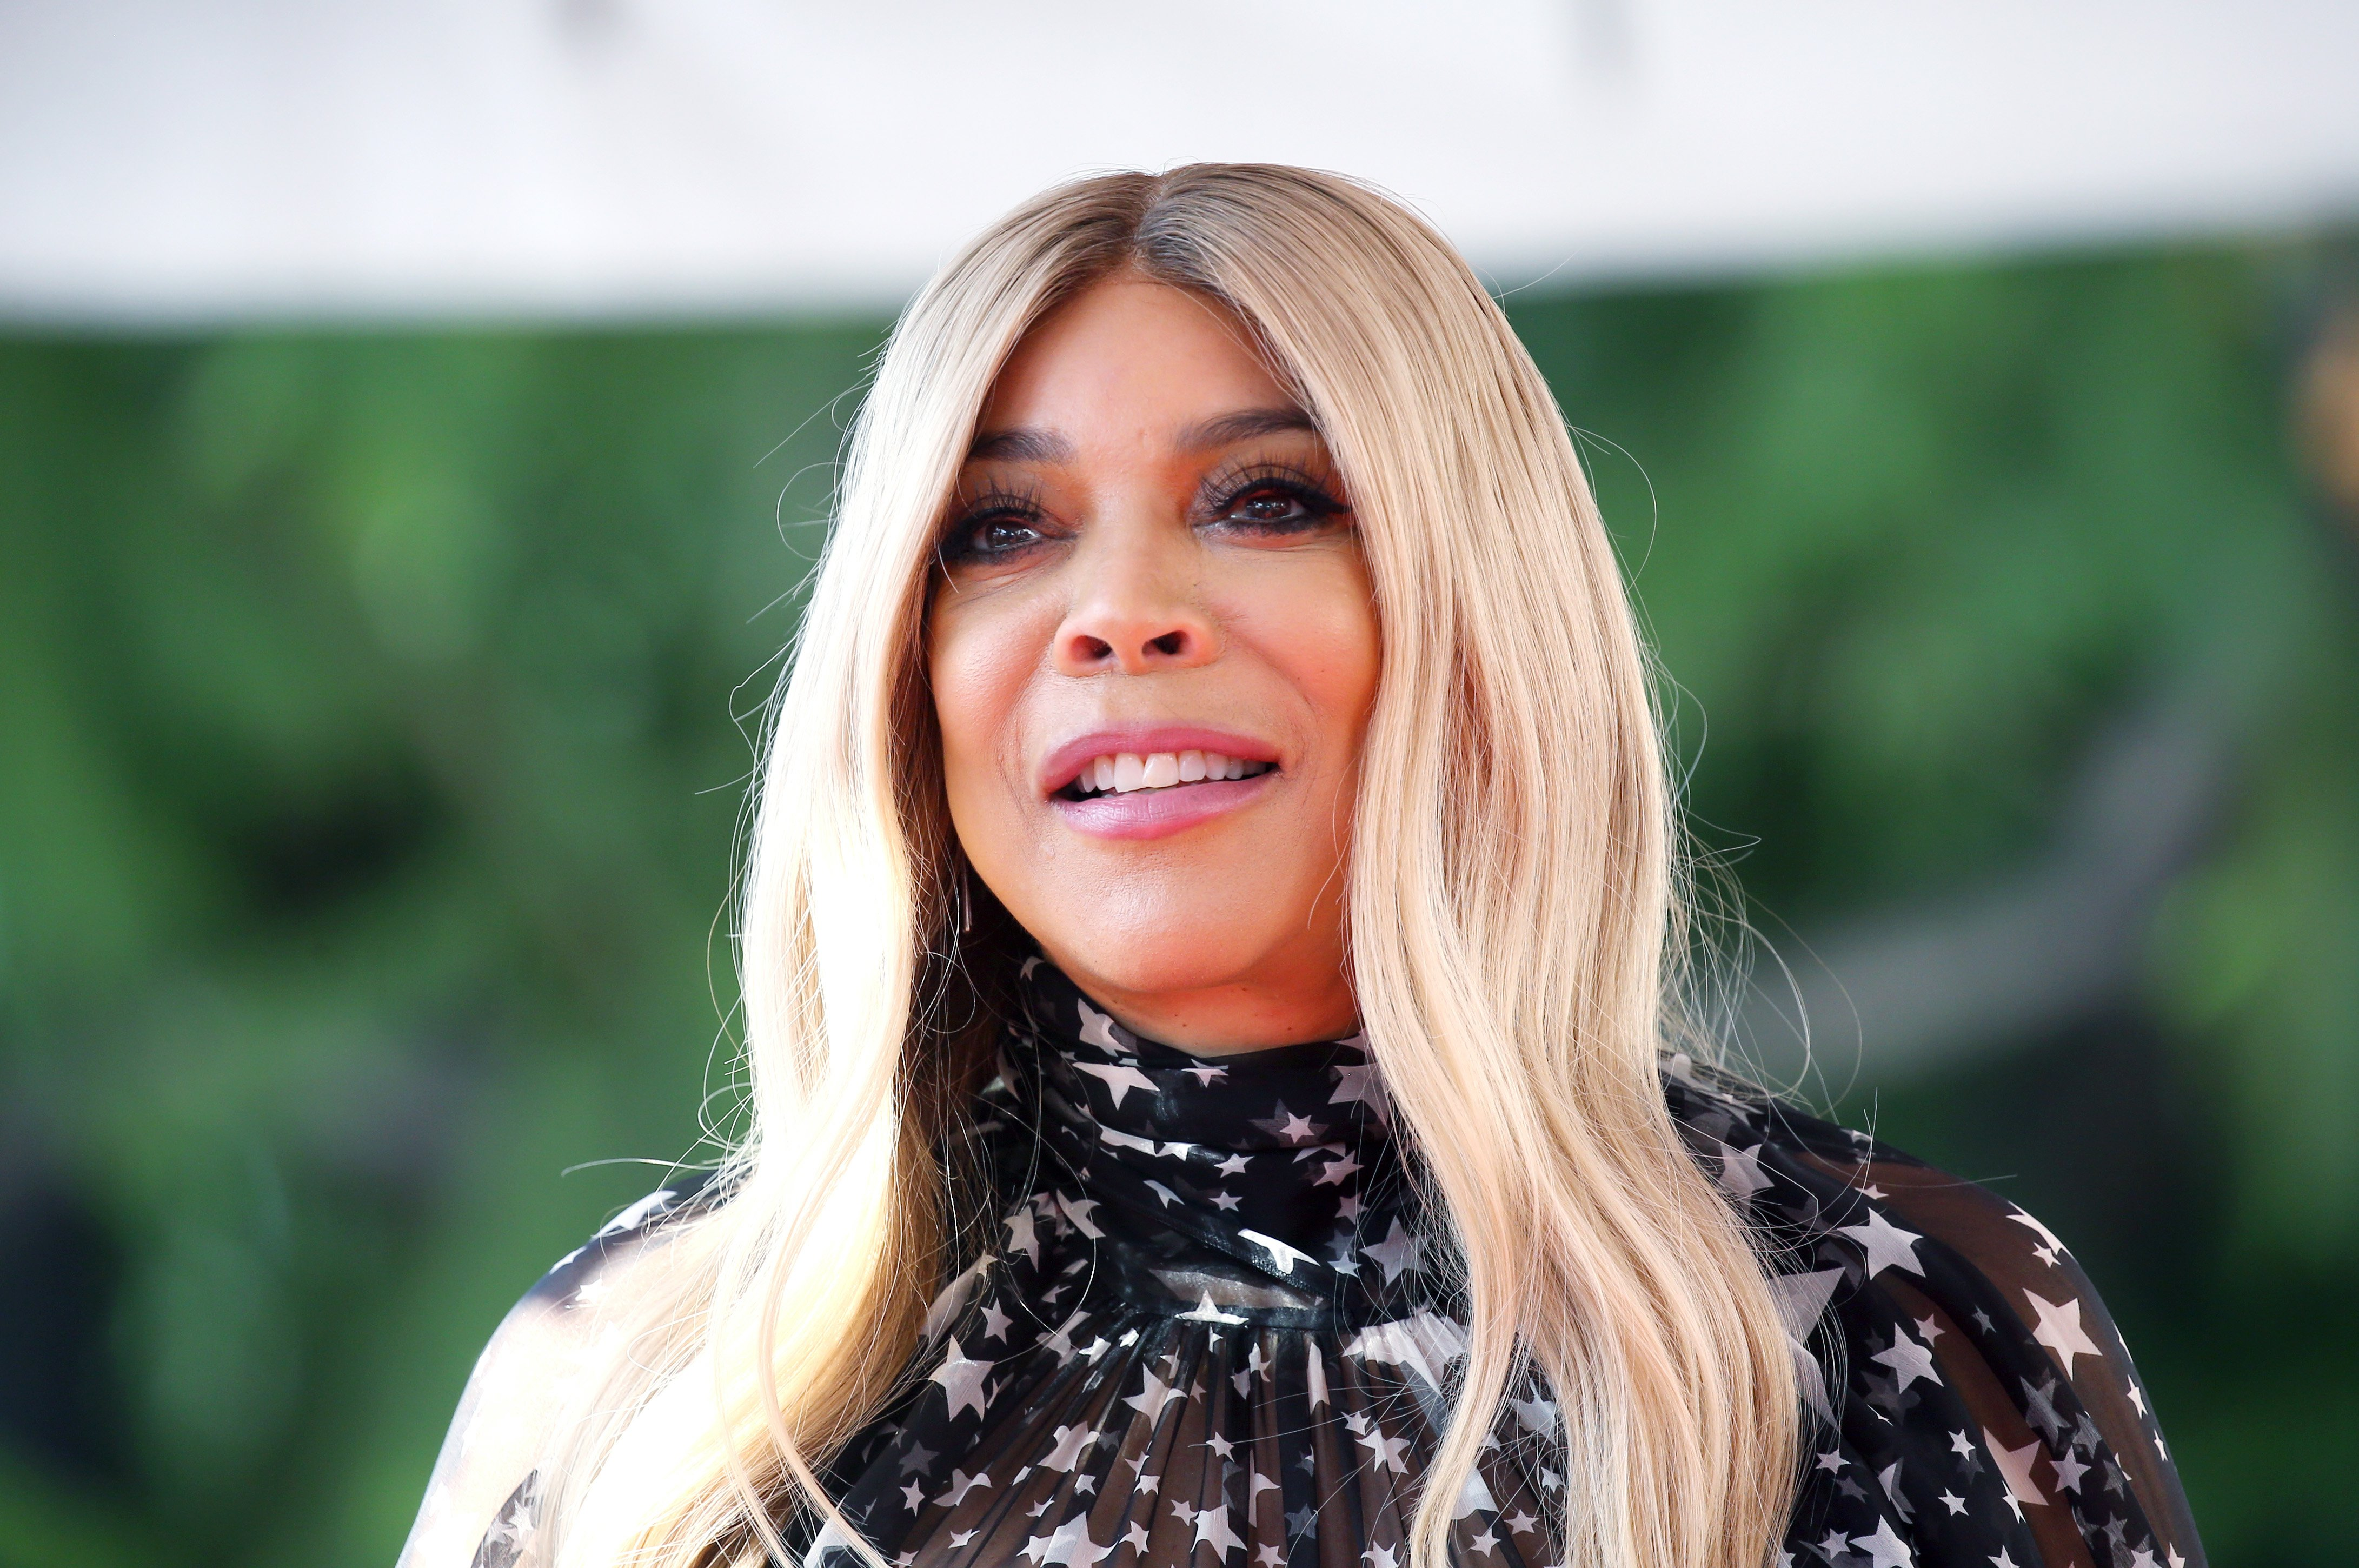 Wendy Williams at the ceremony honoring her with a star on the Hollywood Walk of Fame held on October 17, 2019. | Photo: Getty Images